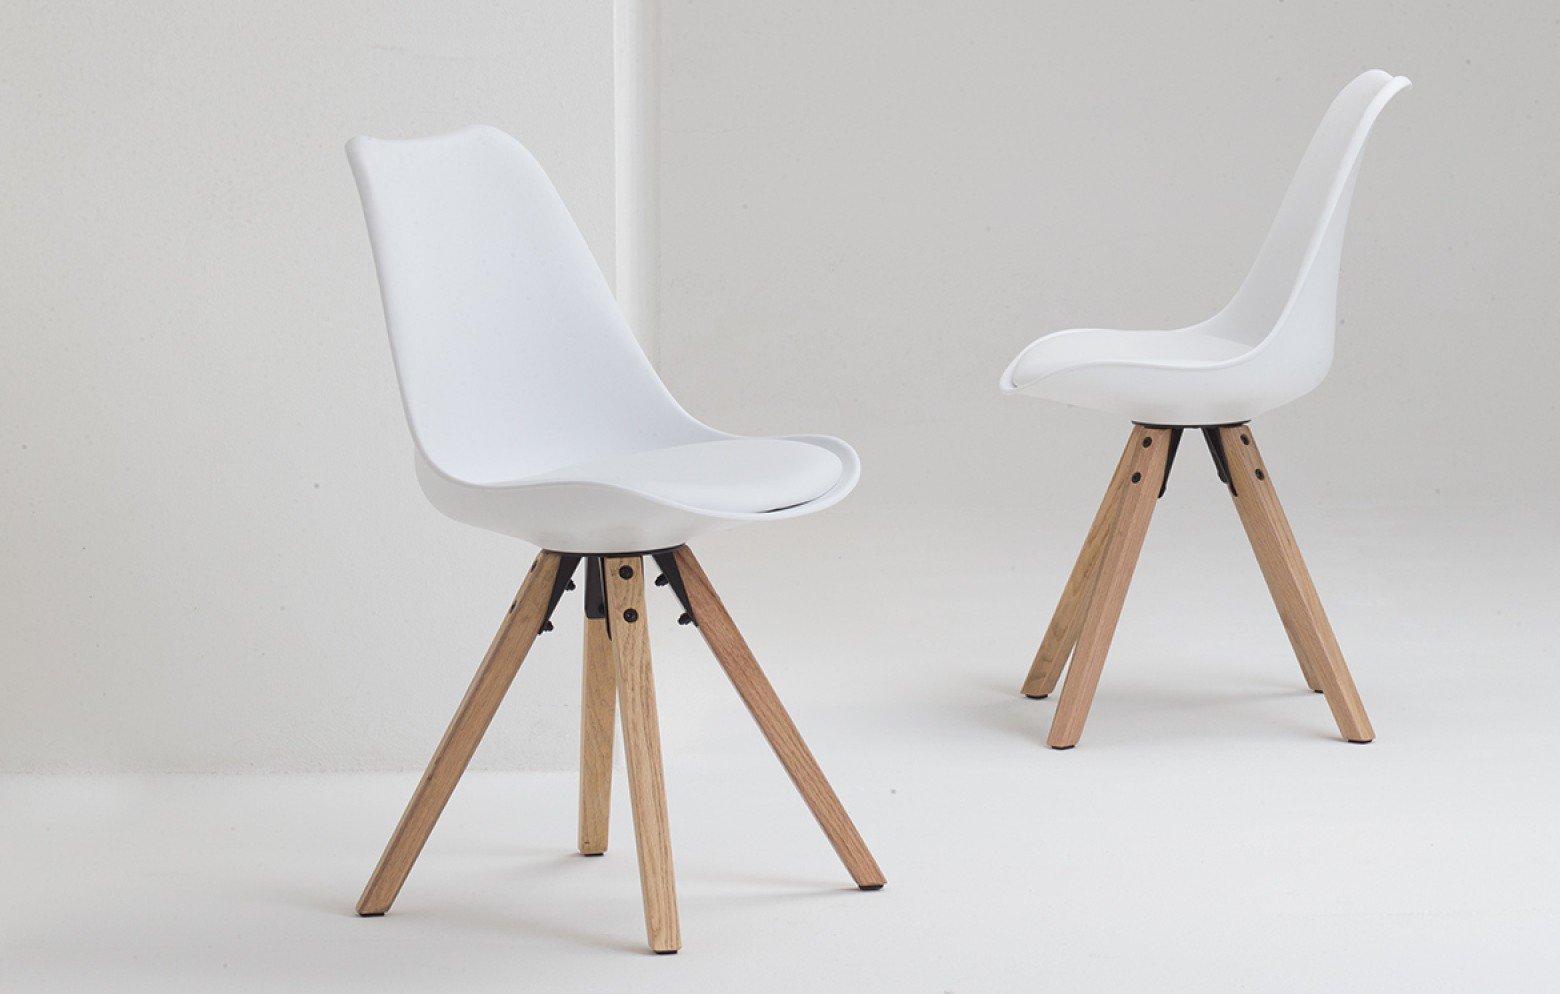 BARRIE WOOD WHITE | Stühle | Tische & Stühle | Who\'s perfect.